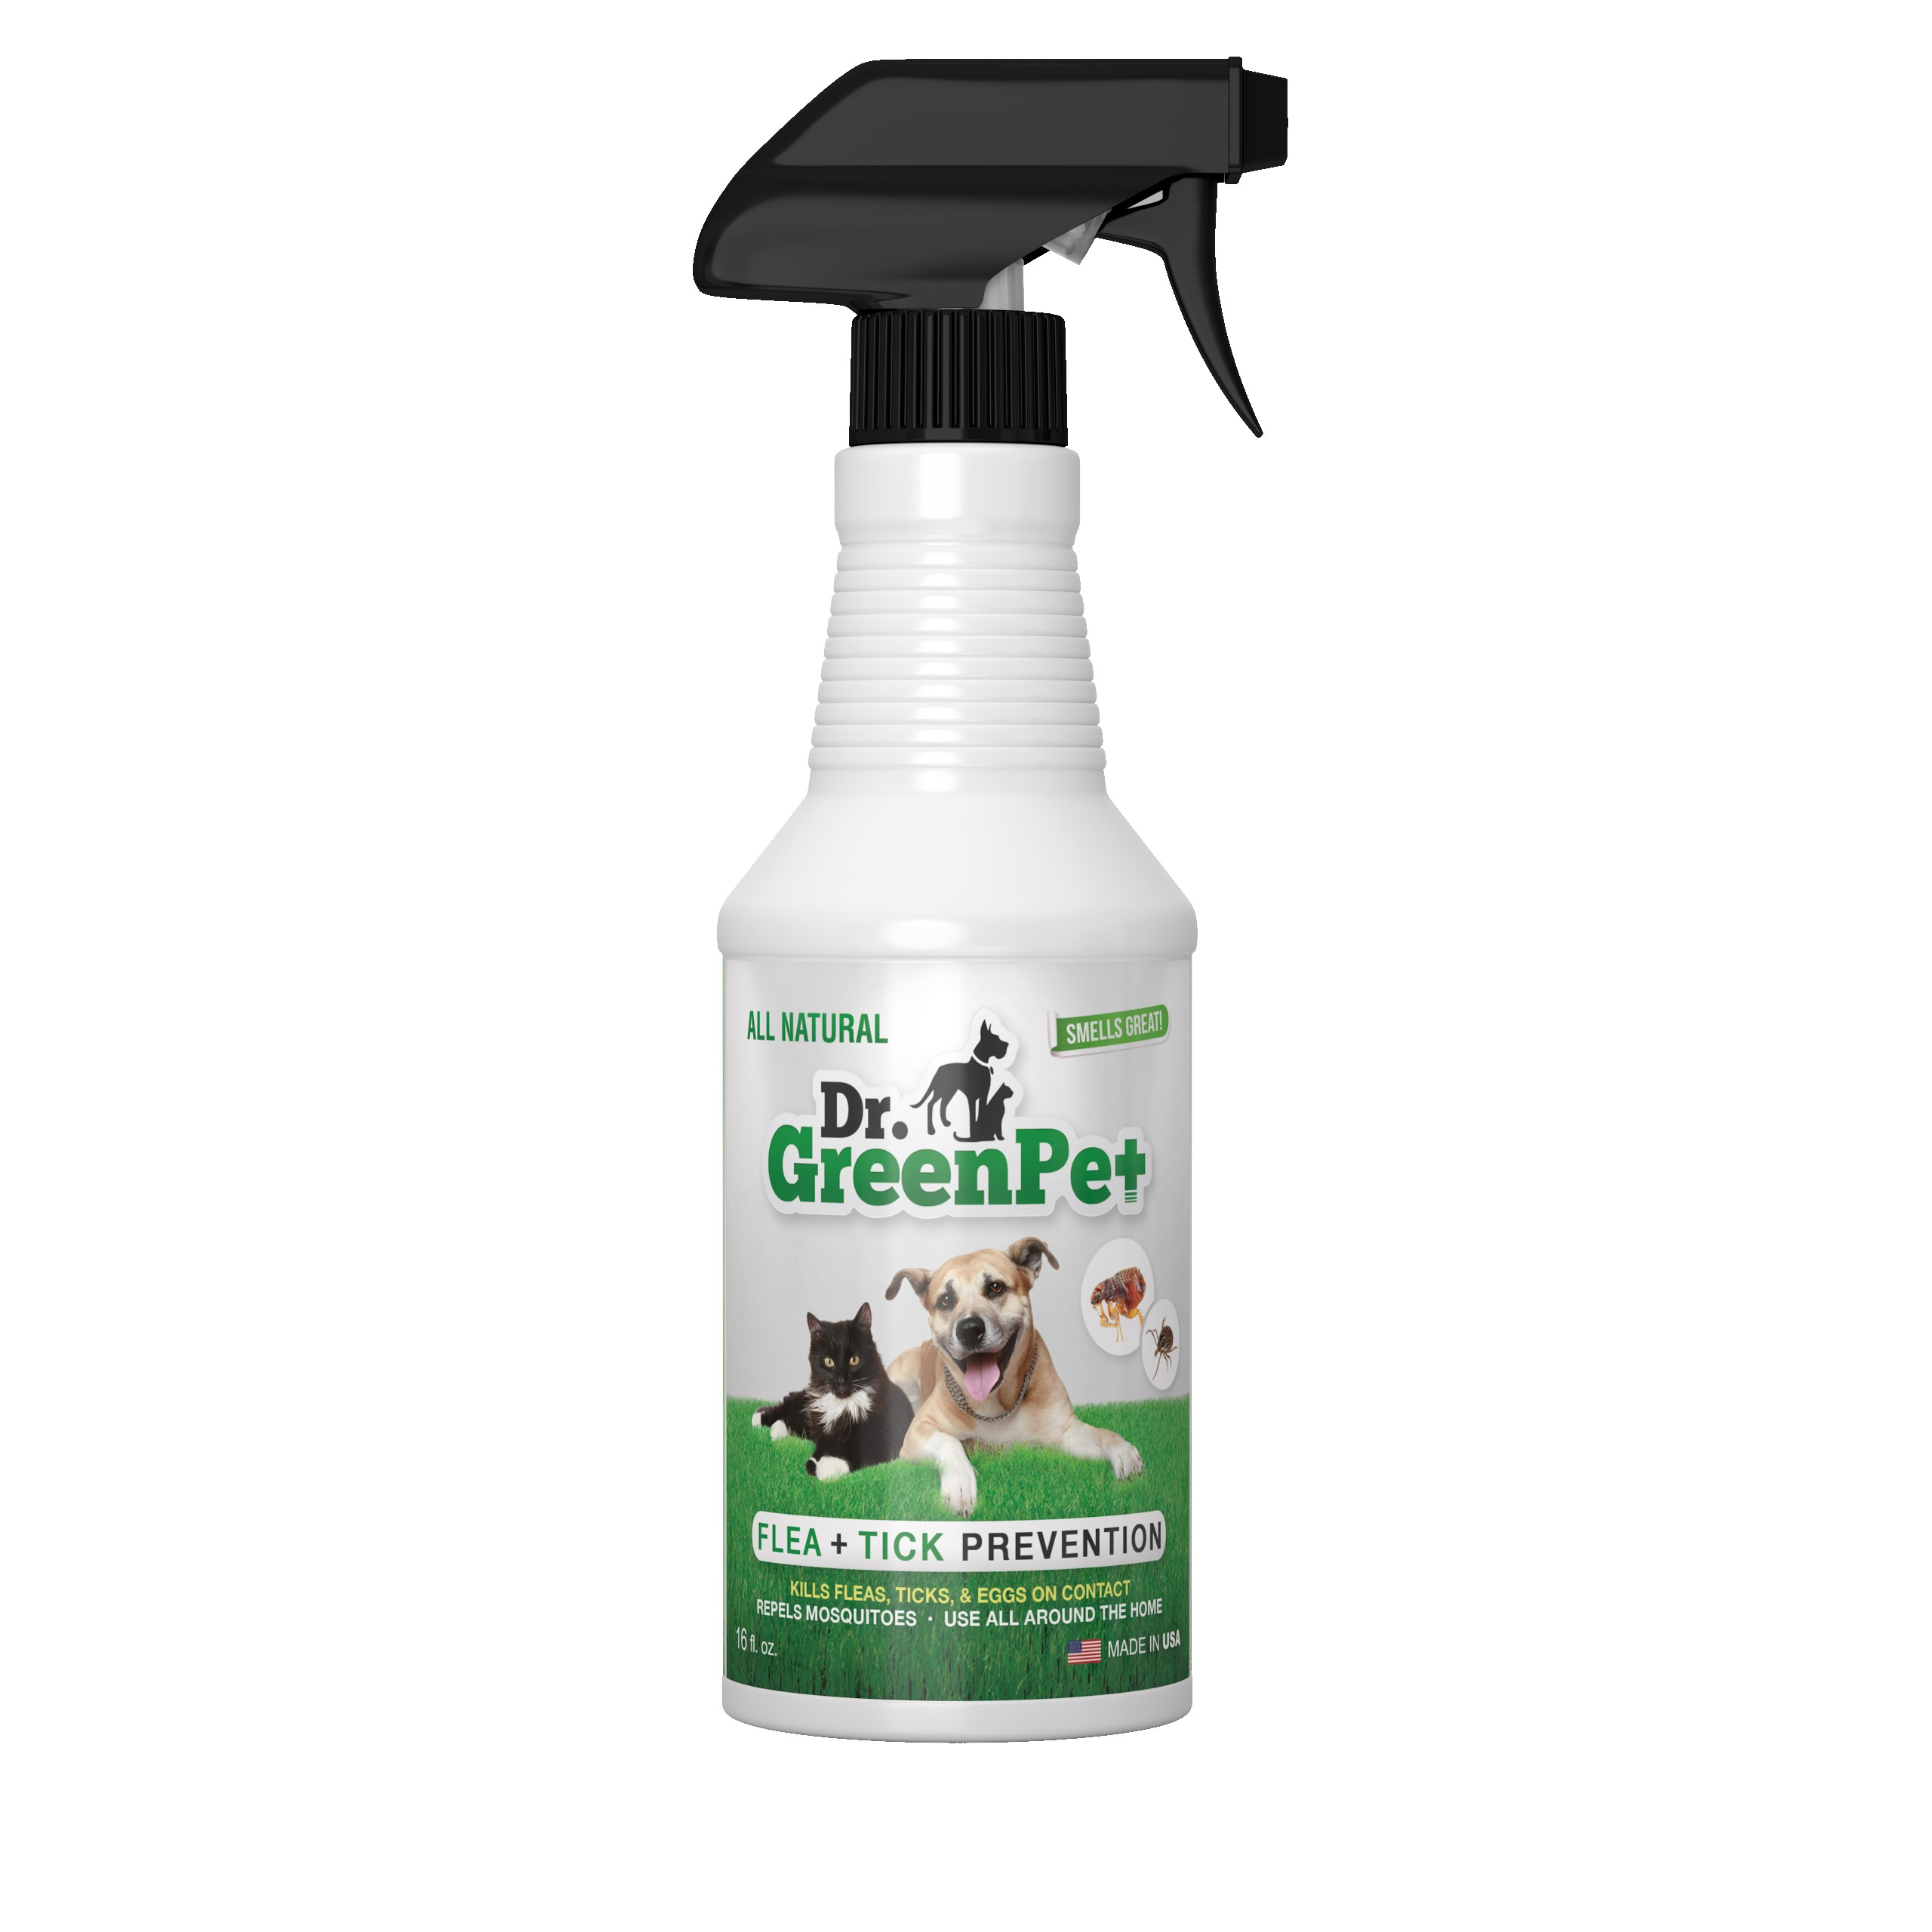 Dr. GreenPet All Natural Flea and Tick Prevention and Control Spray for Dogs and Cats 16oz Smells Great! by Pinelake Industries